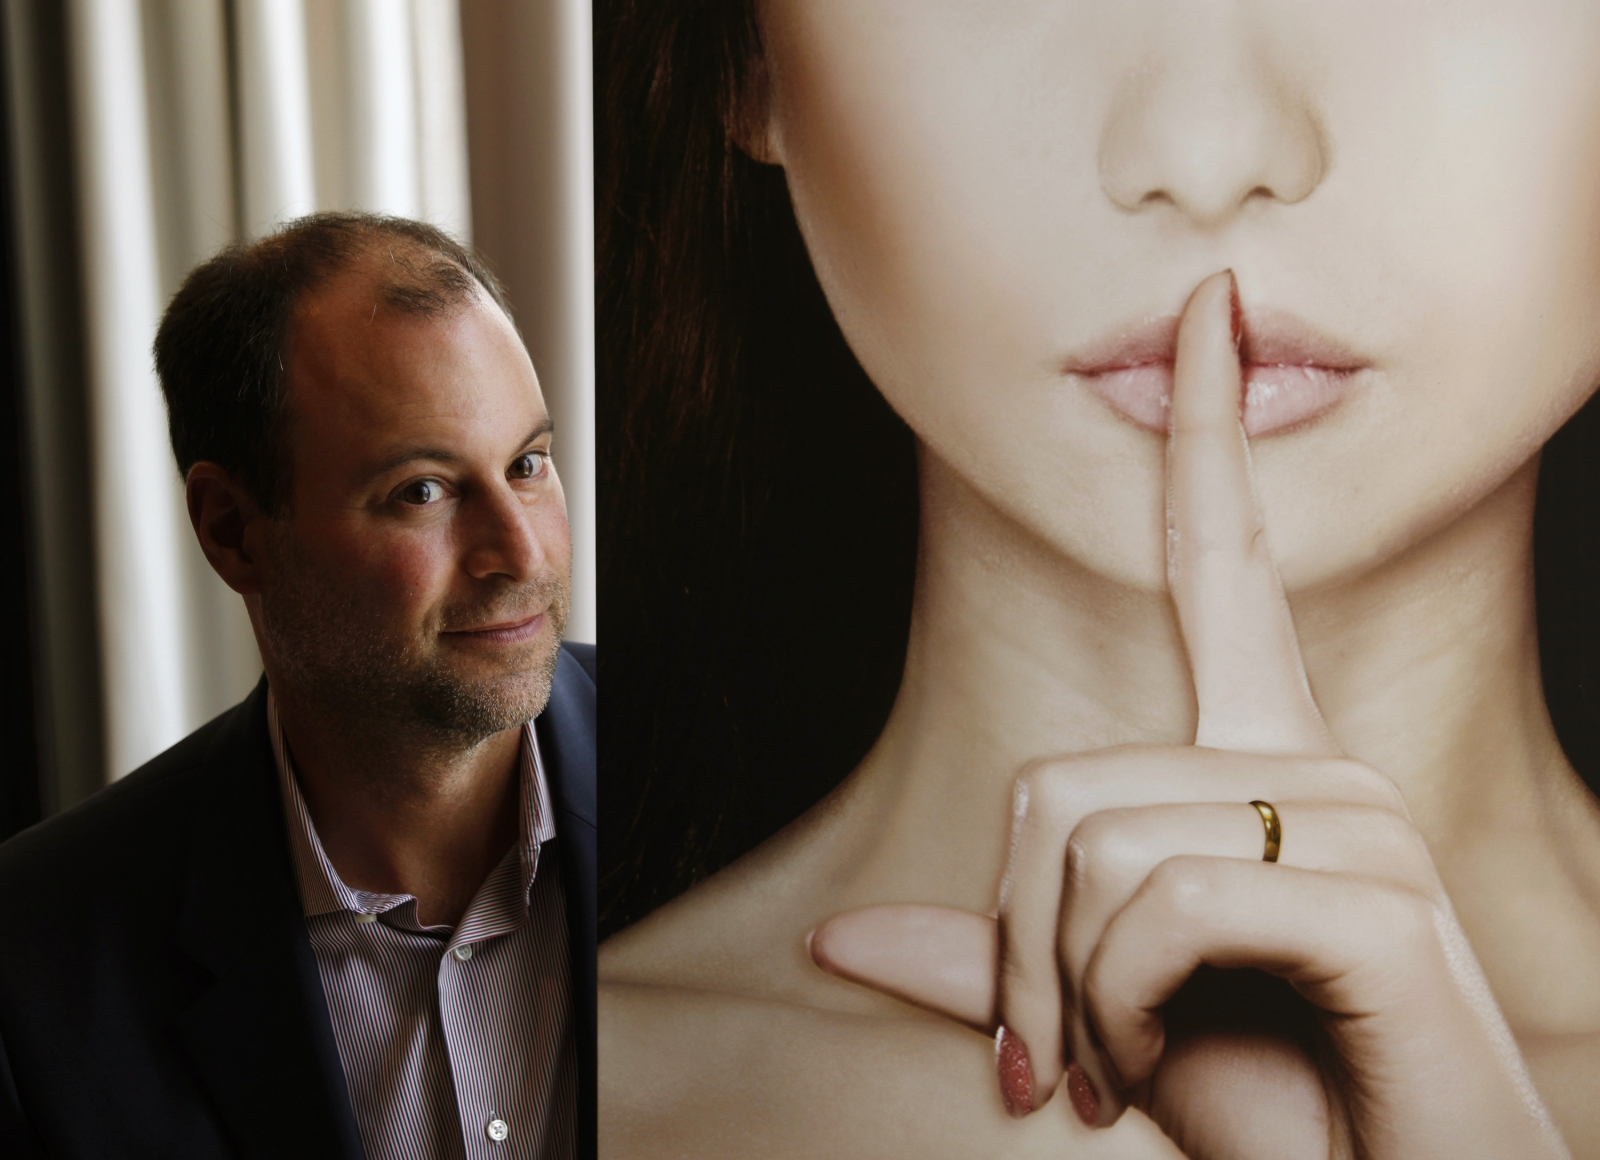 Who hacked Ashley Madison cheating website